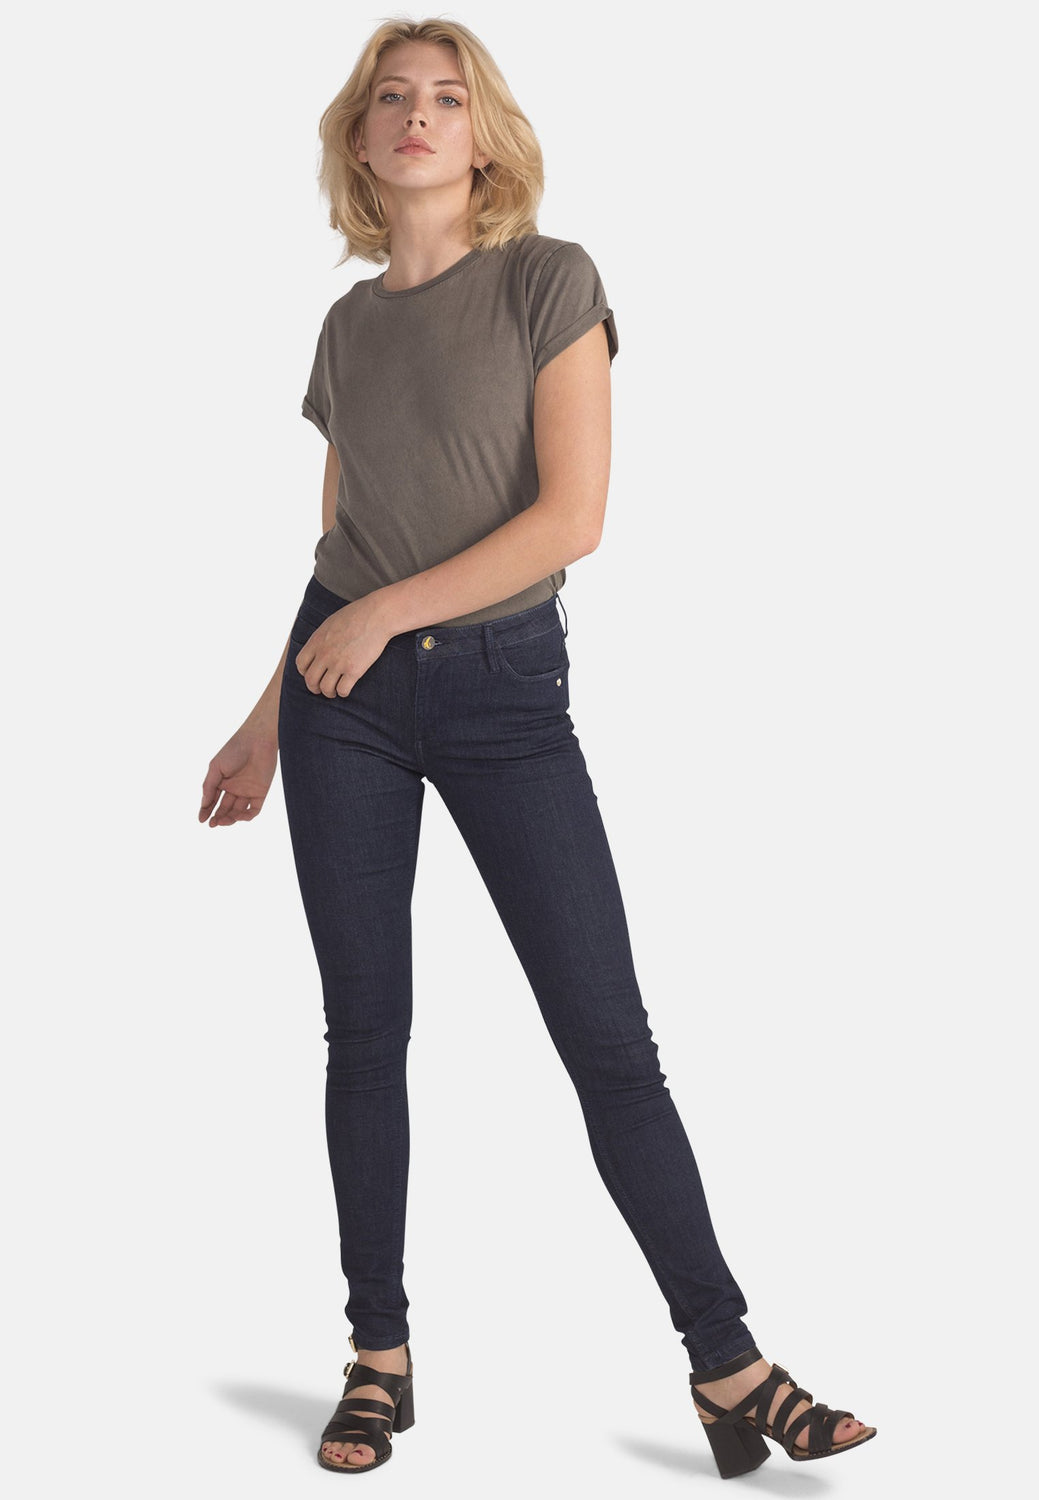 Organic Flex Super Skinny Jeans in Rinse - Monkee Genes Organic Jeans Denim - Women's Silhouette Monkee Genes Official  Monkee Genes Official